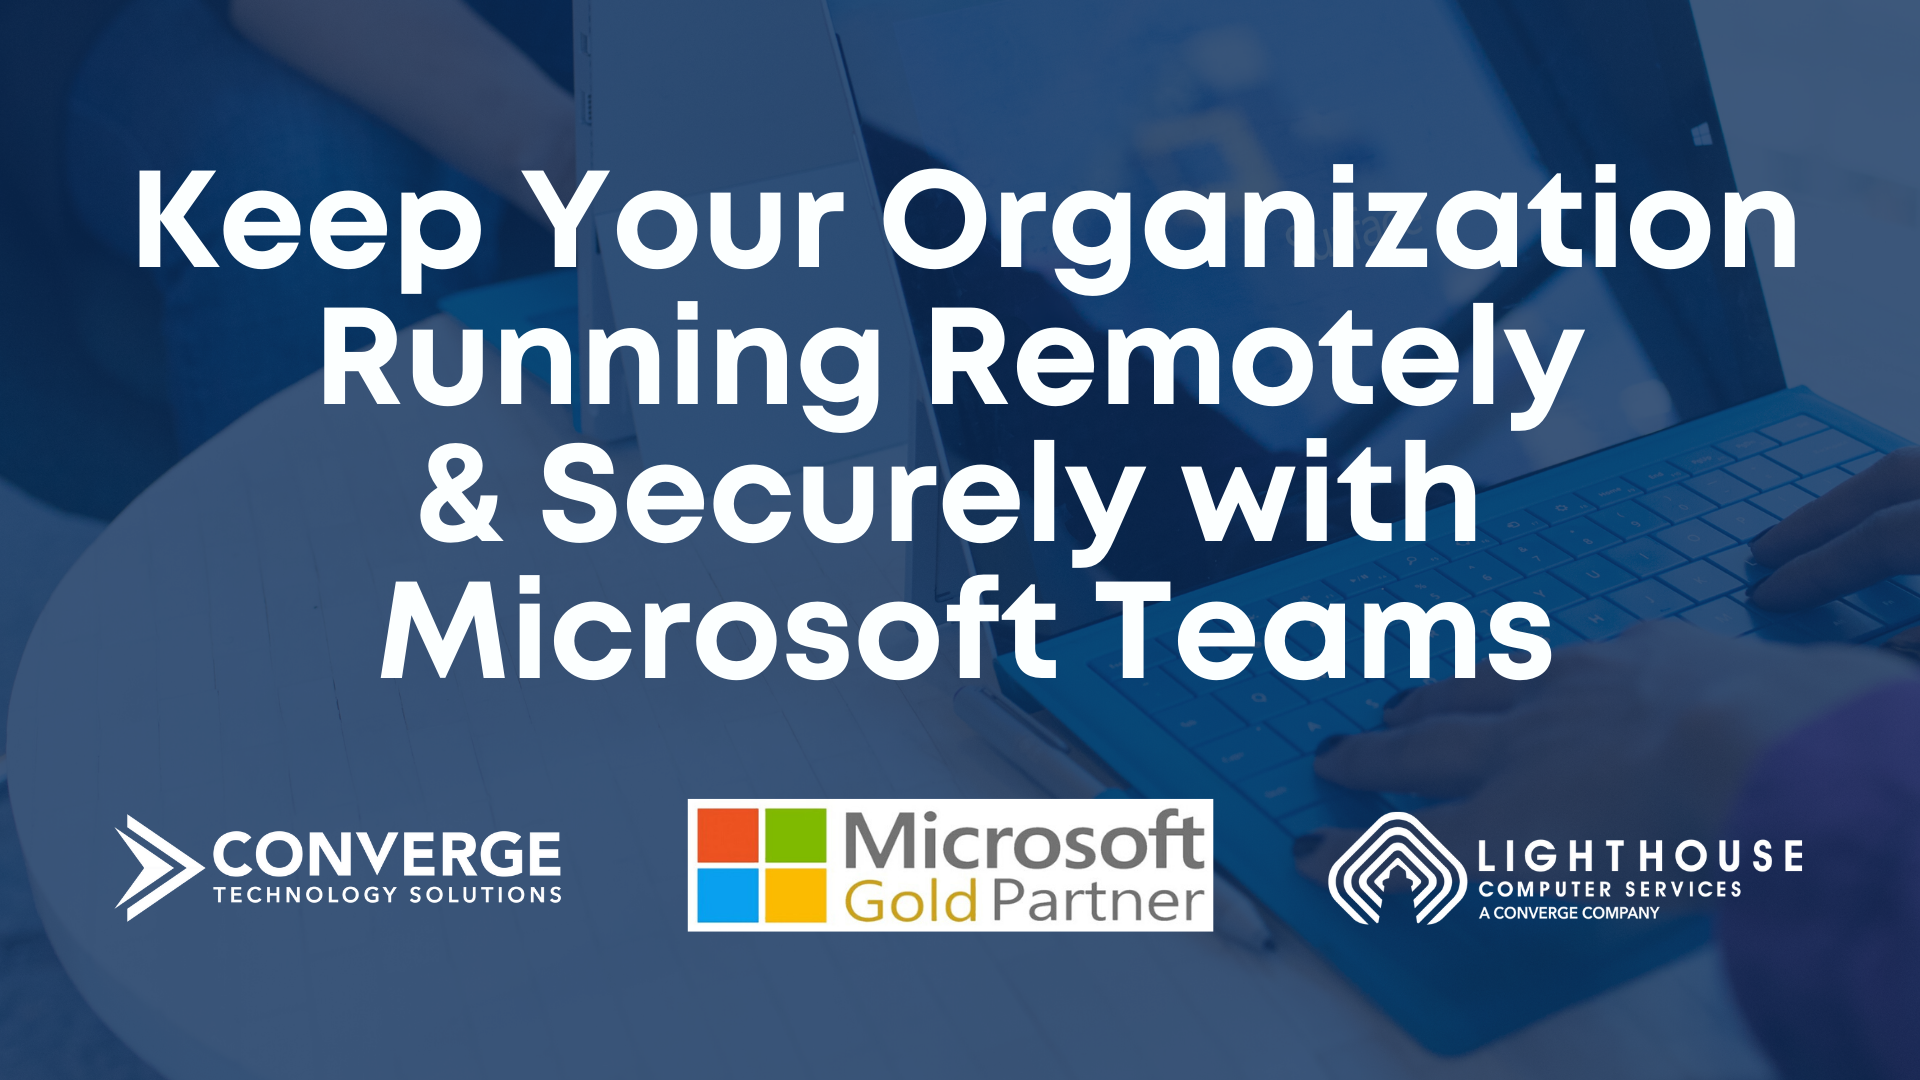 Keep Your Organization Running Remotely & Securely with Microsoft Teams